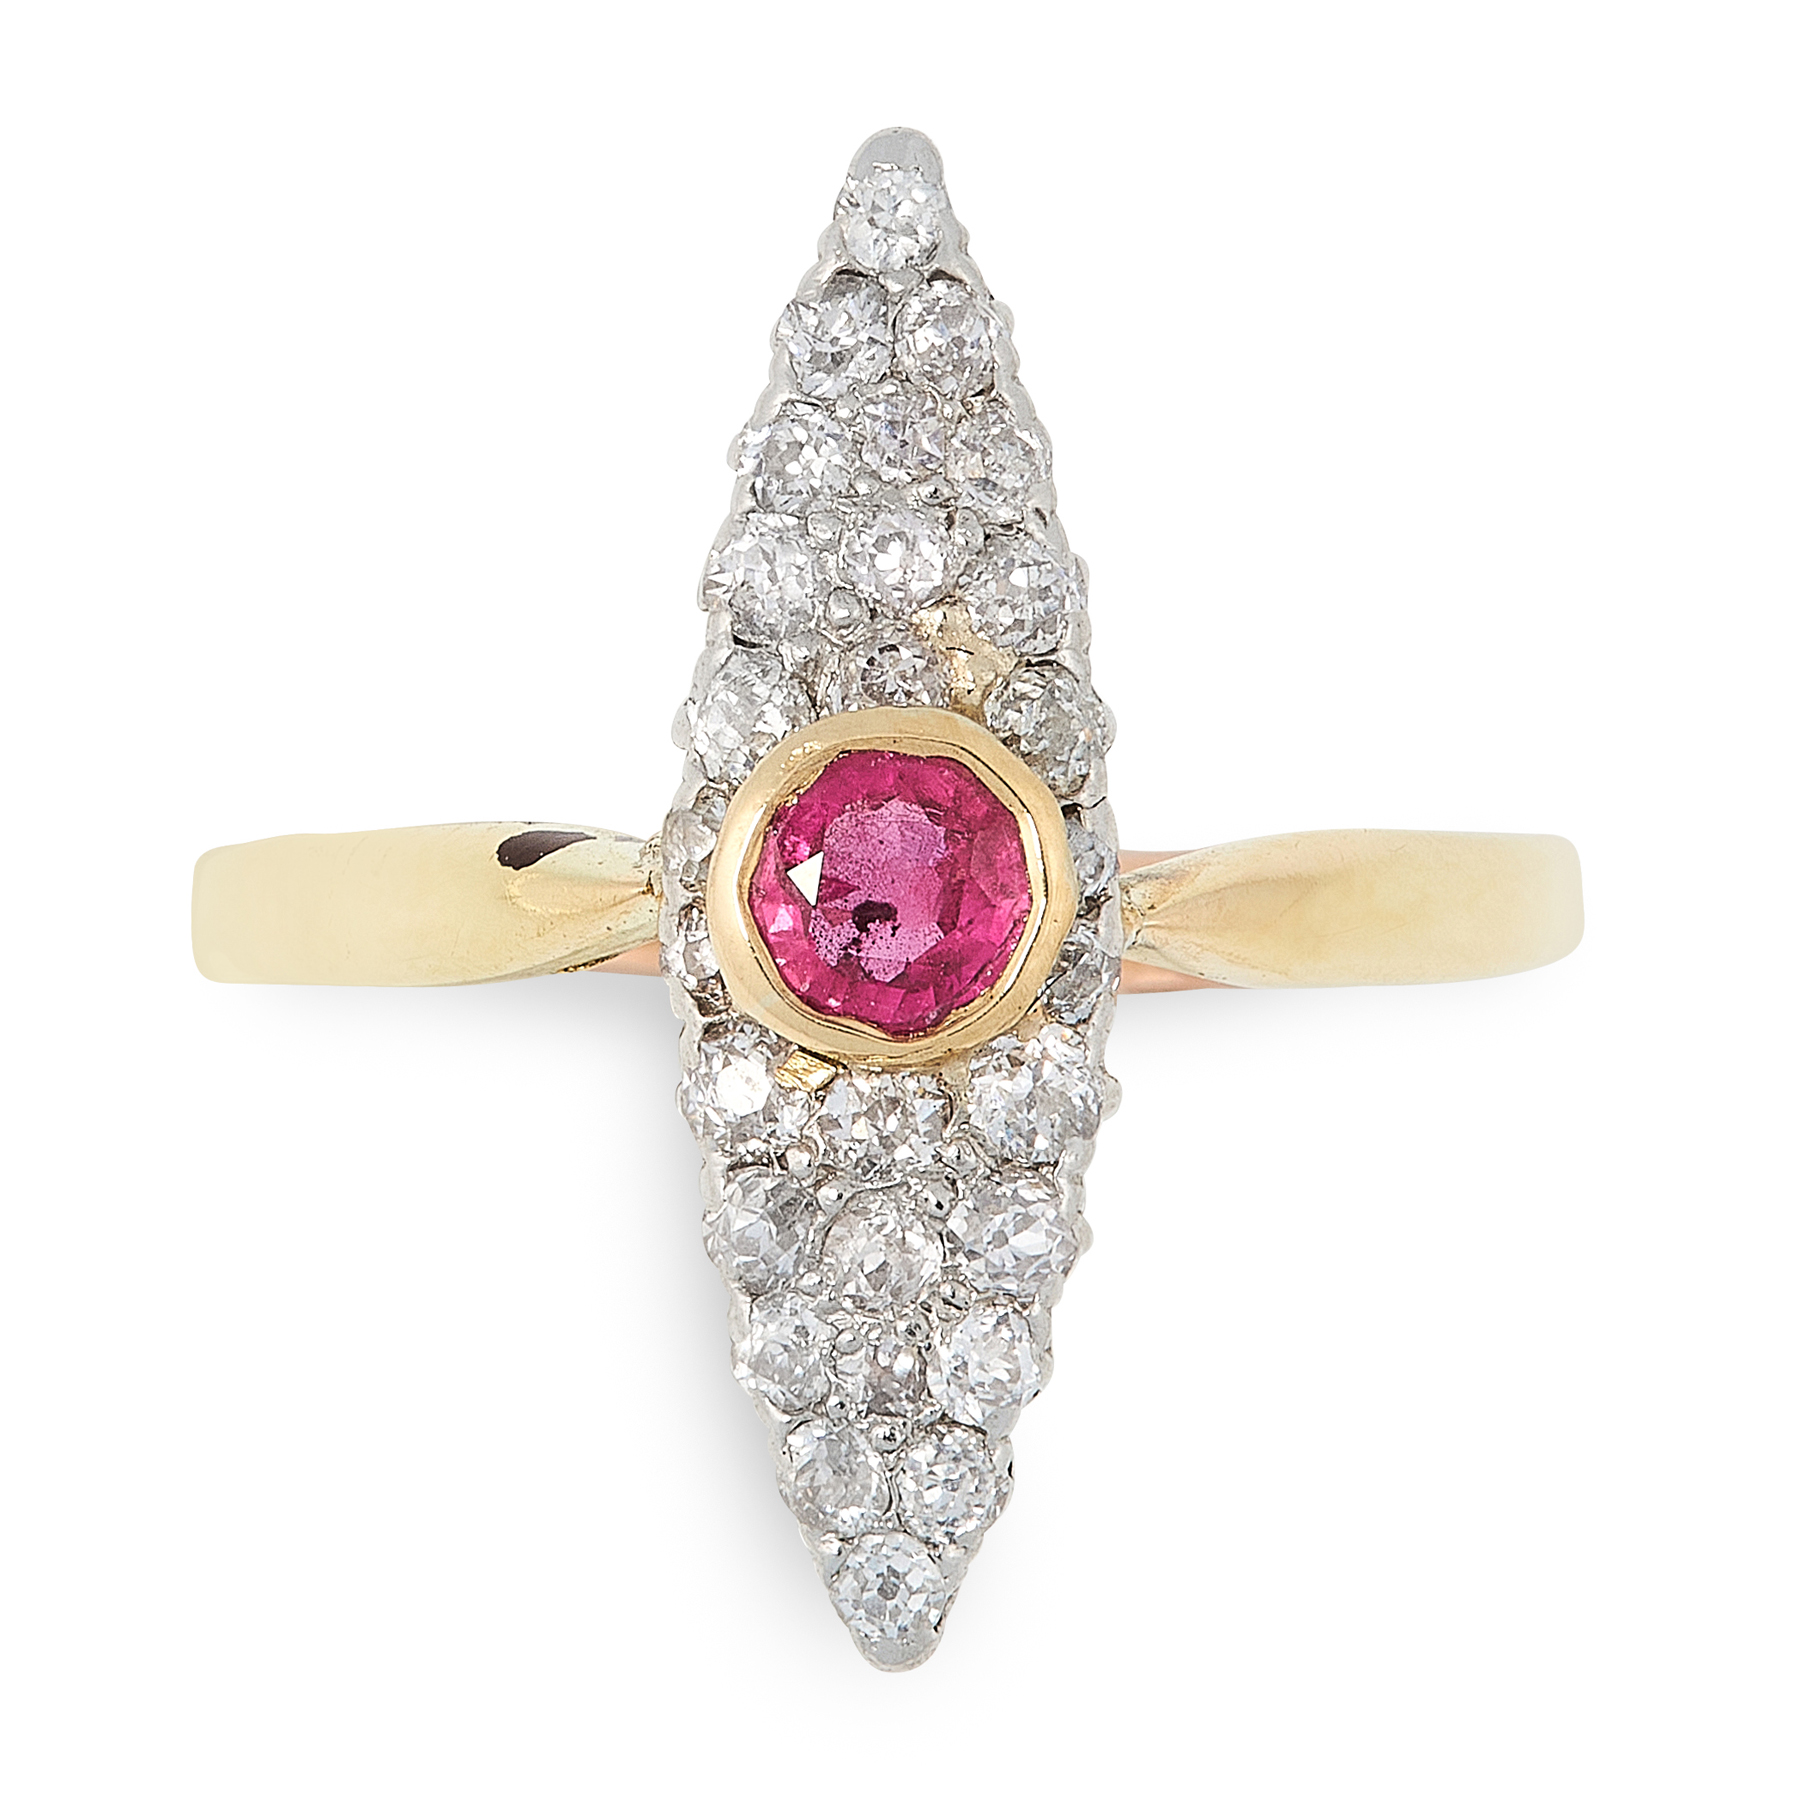 A RUBY AND DIAMOND DRESS RING in 18ct yellow gold, the marquise shaped face set with a cushion cut